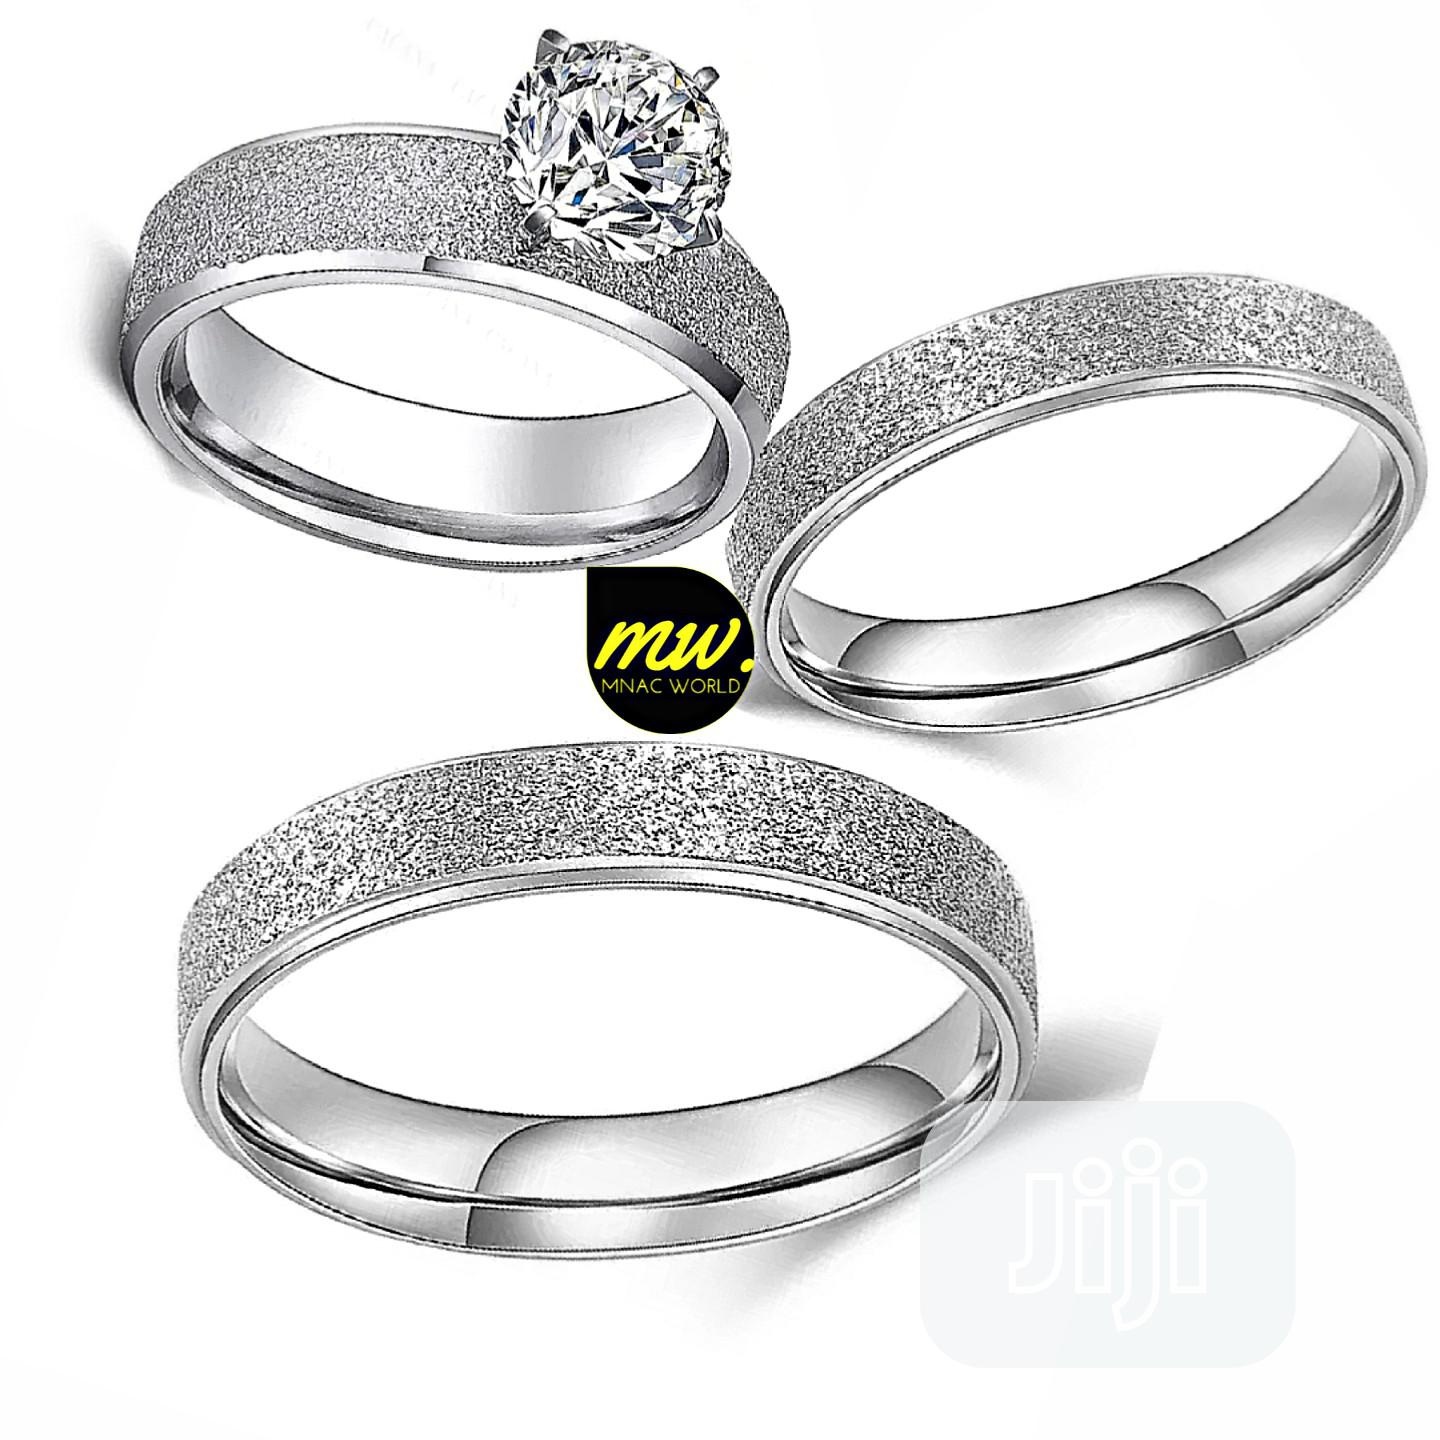 Archive: Stainless Steel Lasting 3pcs Wedding Rings